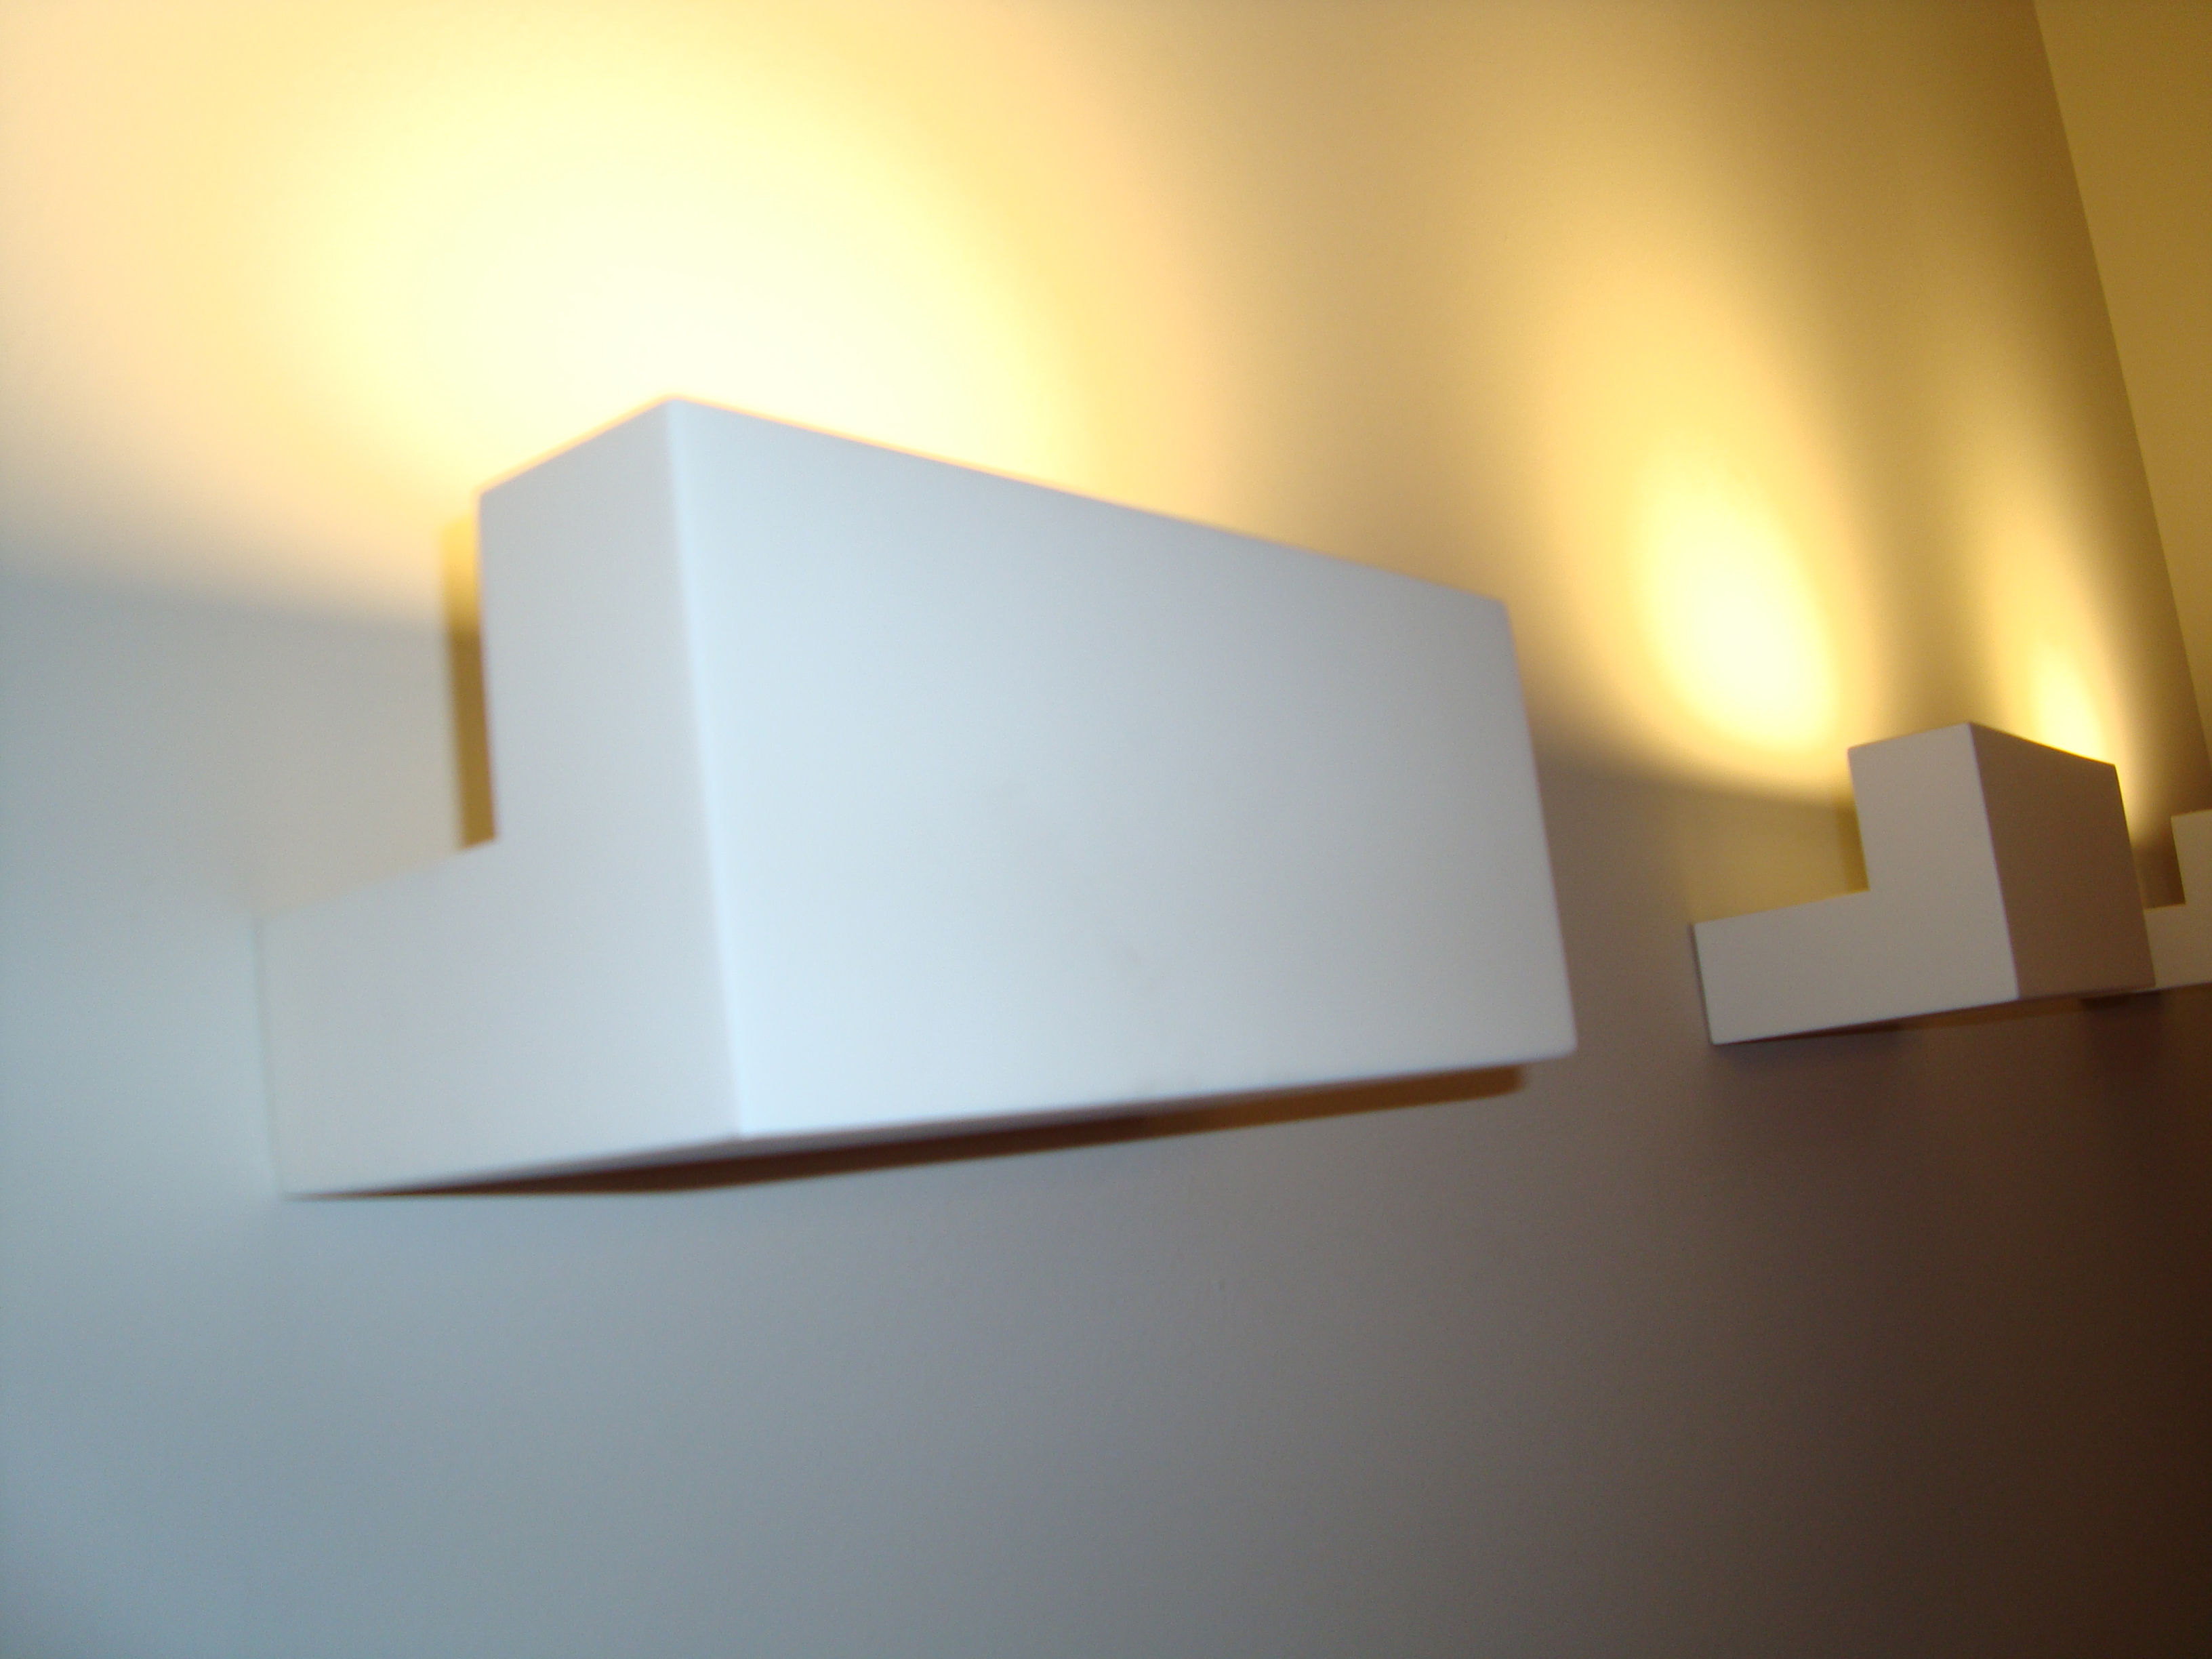 Flos Plafoniera Led : Long light applique led bianco opaco by flos made in design